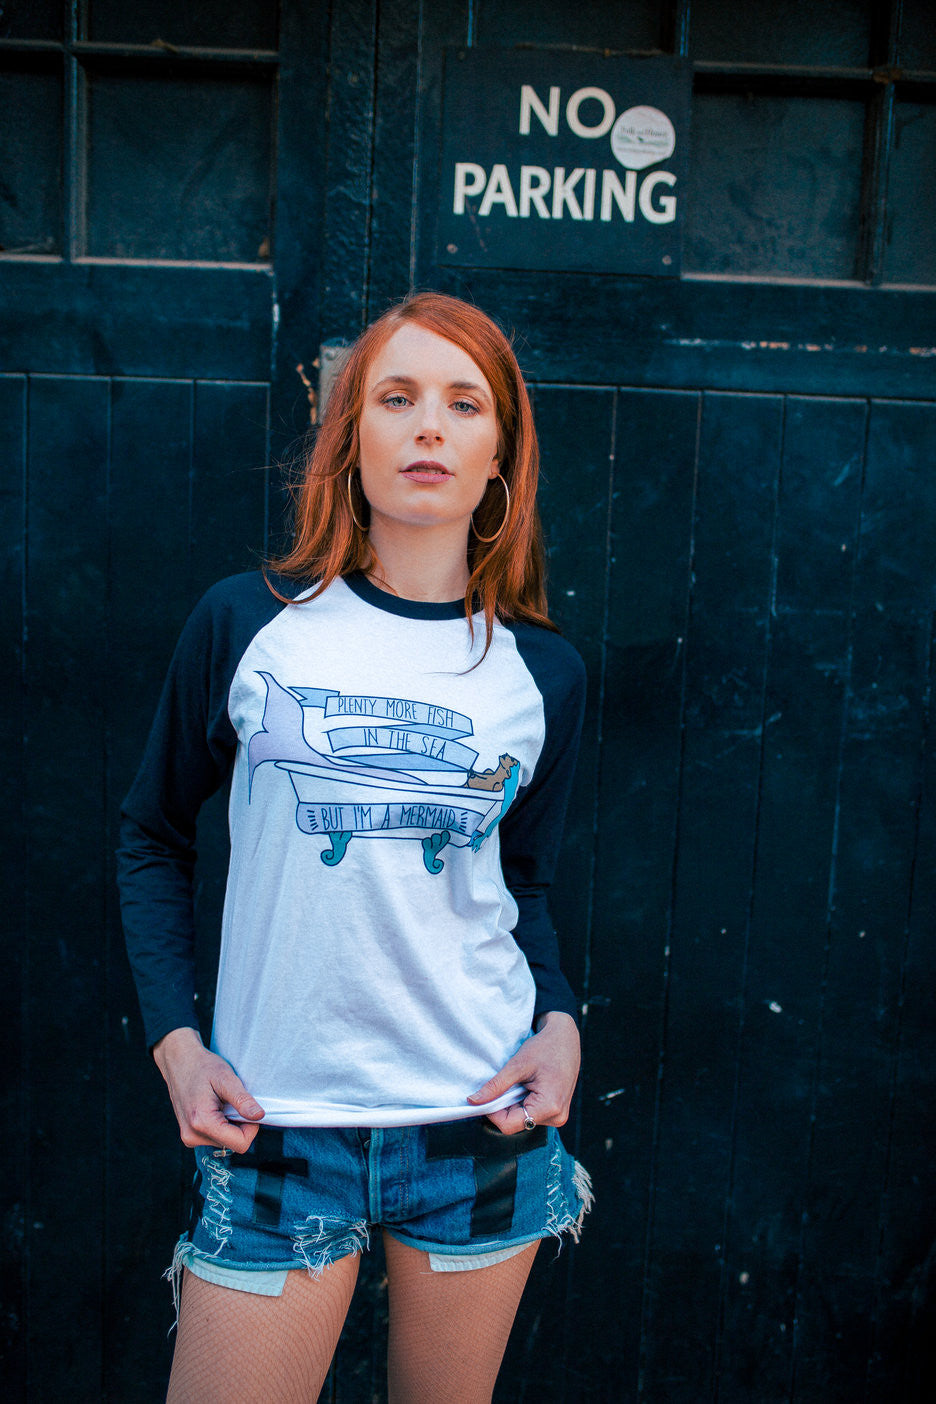 Plenty More Fish In The Sea 3/4 Length Raglan Unisex Shirt